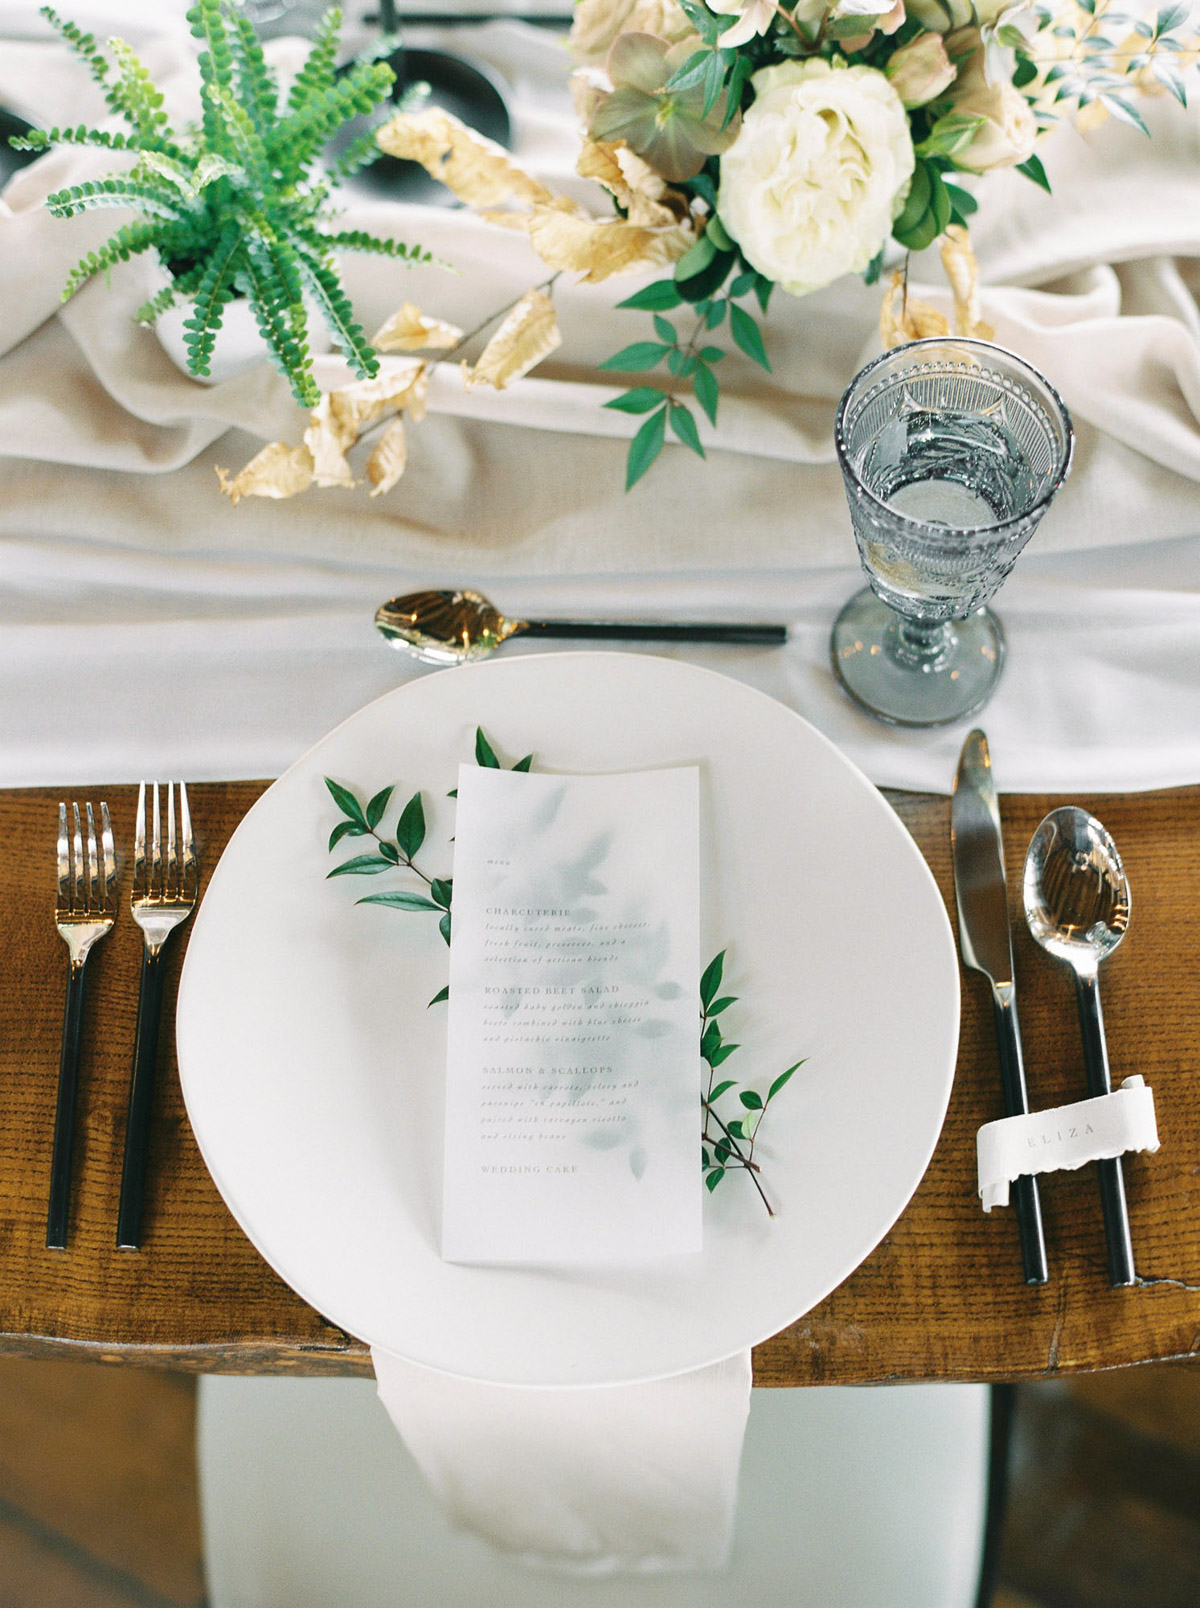 will-reid-photo-vineyard-bride-swish-list-kurtz-orchards-market-niagara-on-the-lake-wedding-editorial-12.jpg